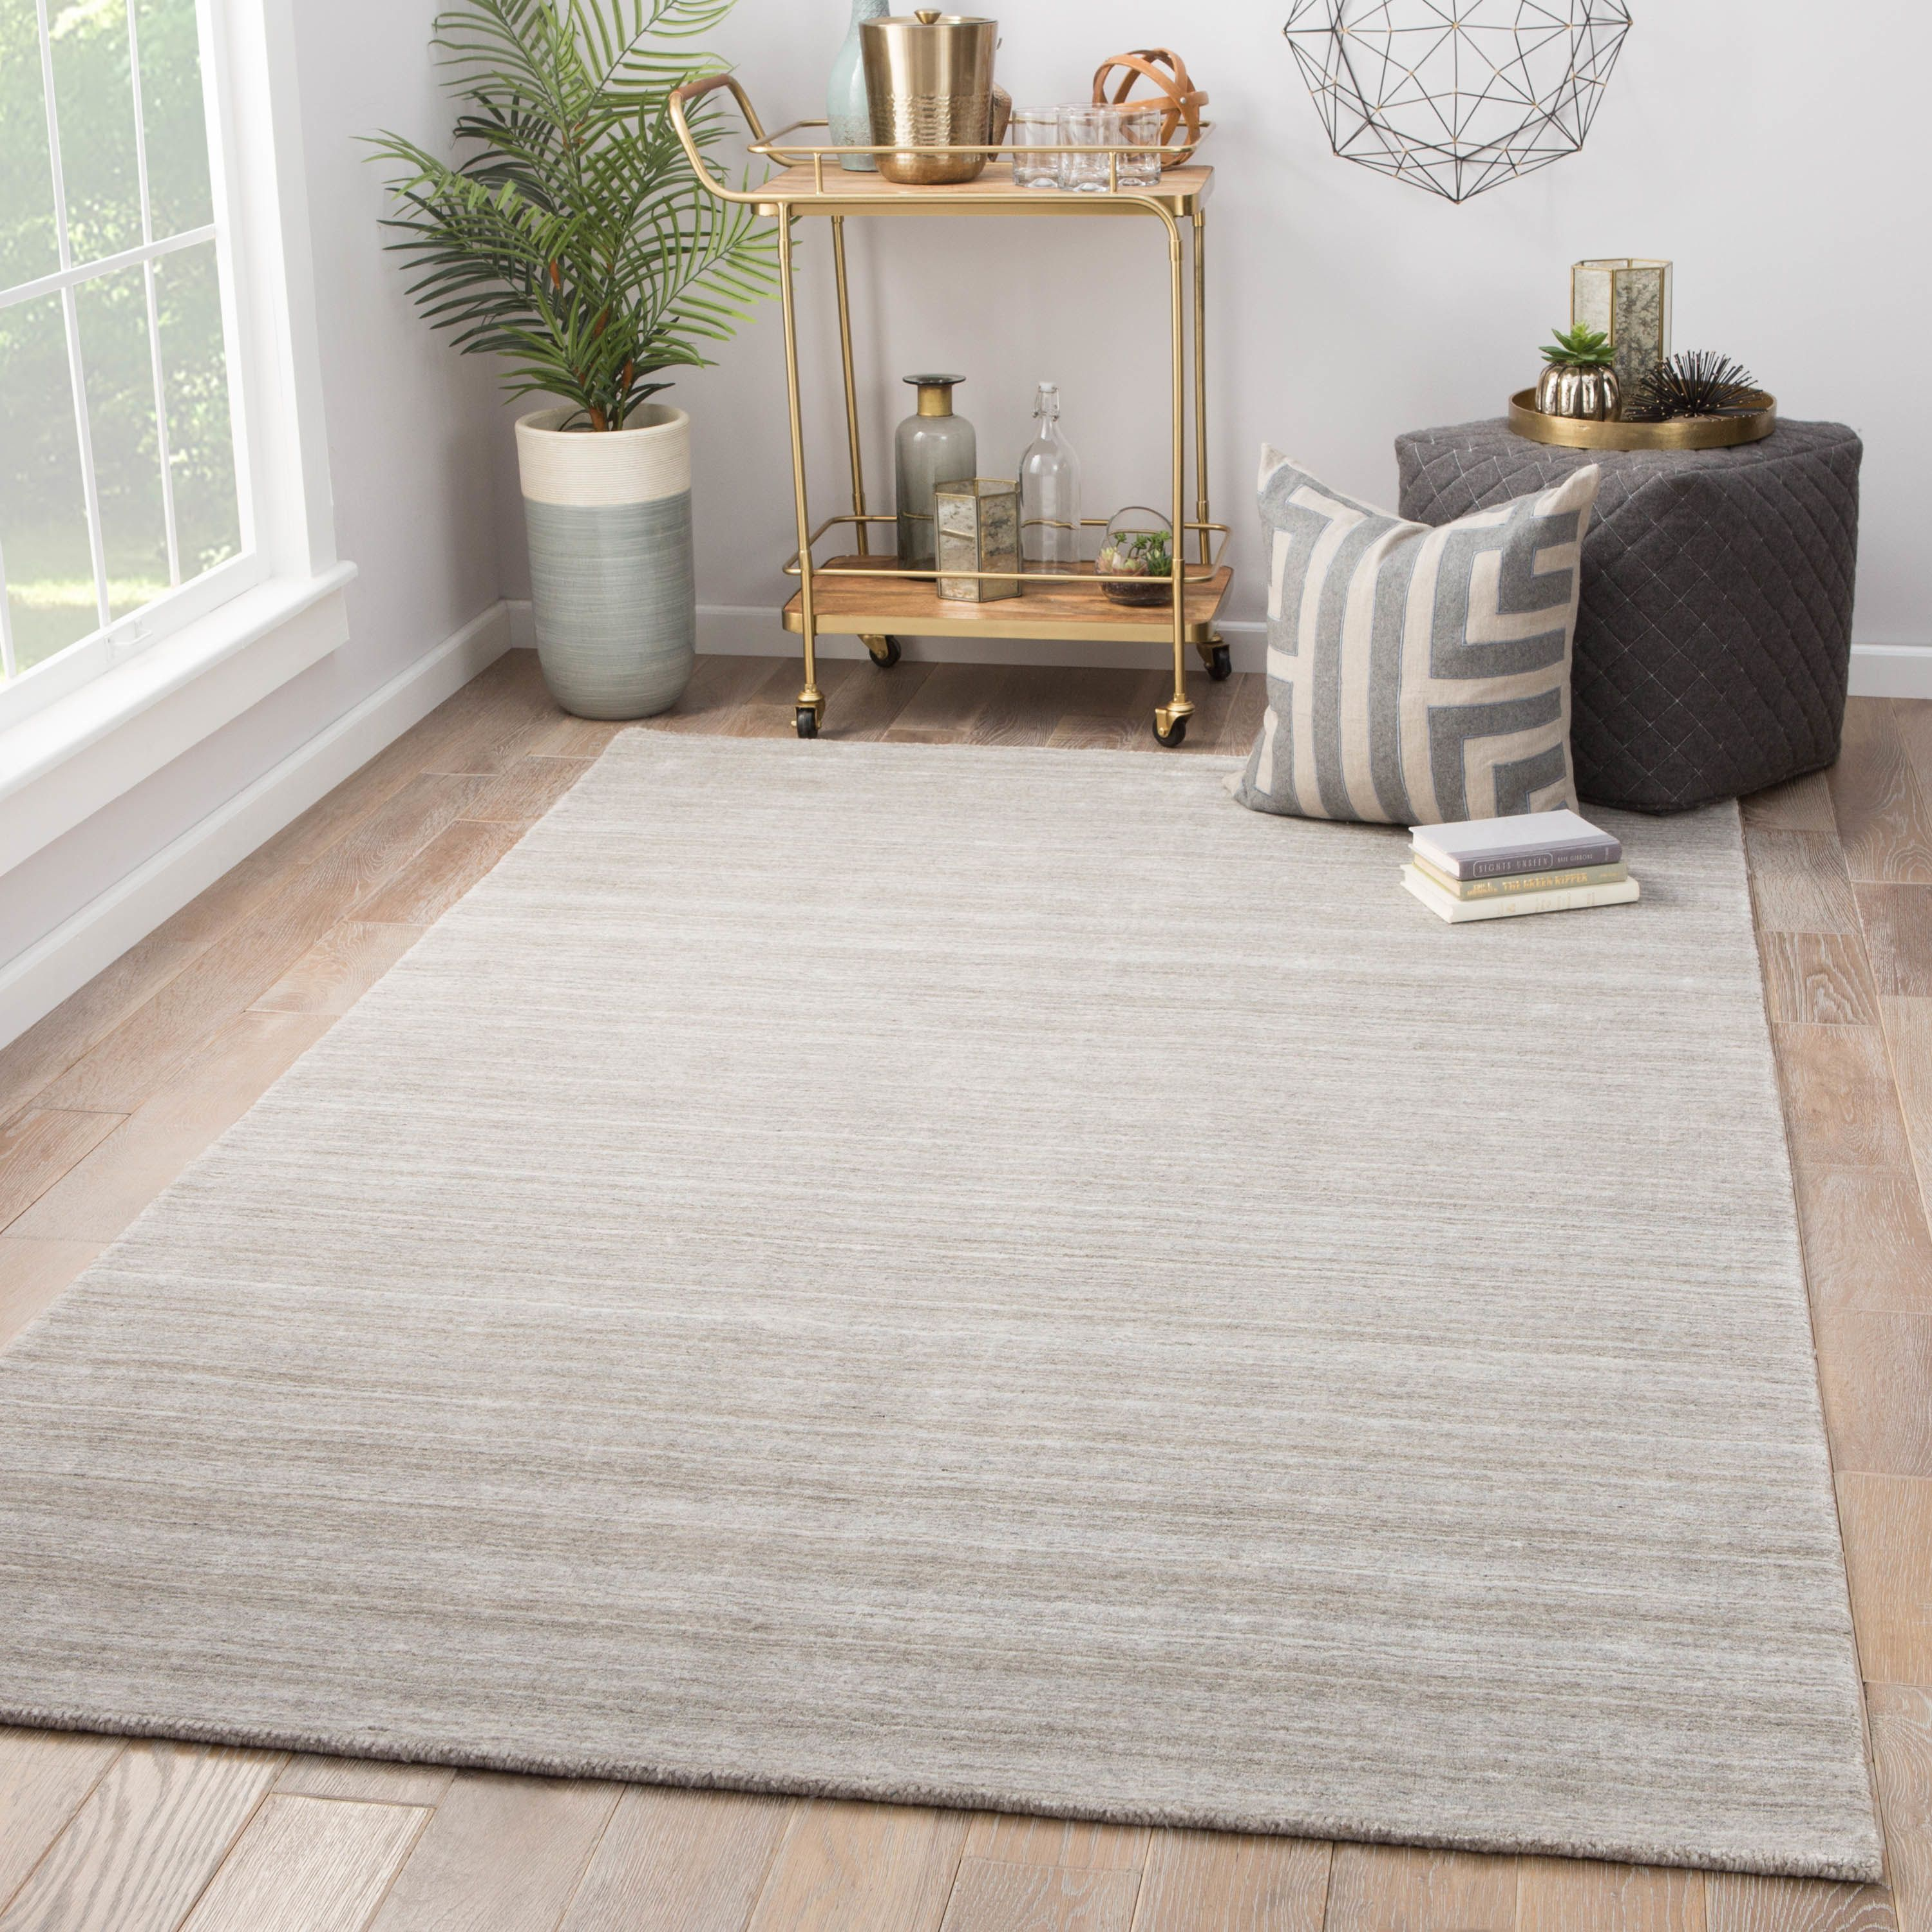 Oplyse Color Gray Silver Size 10 X 14 Area Rugs Rugs